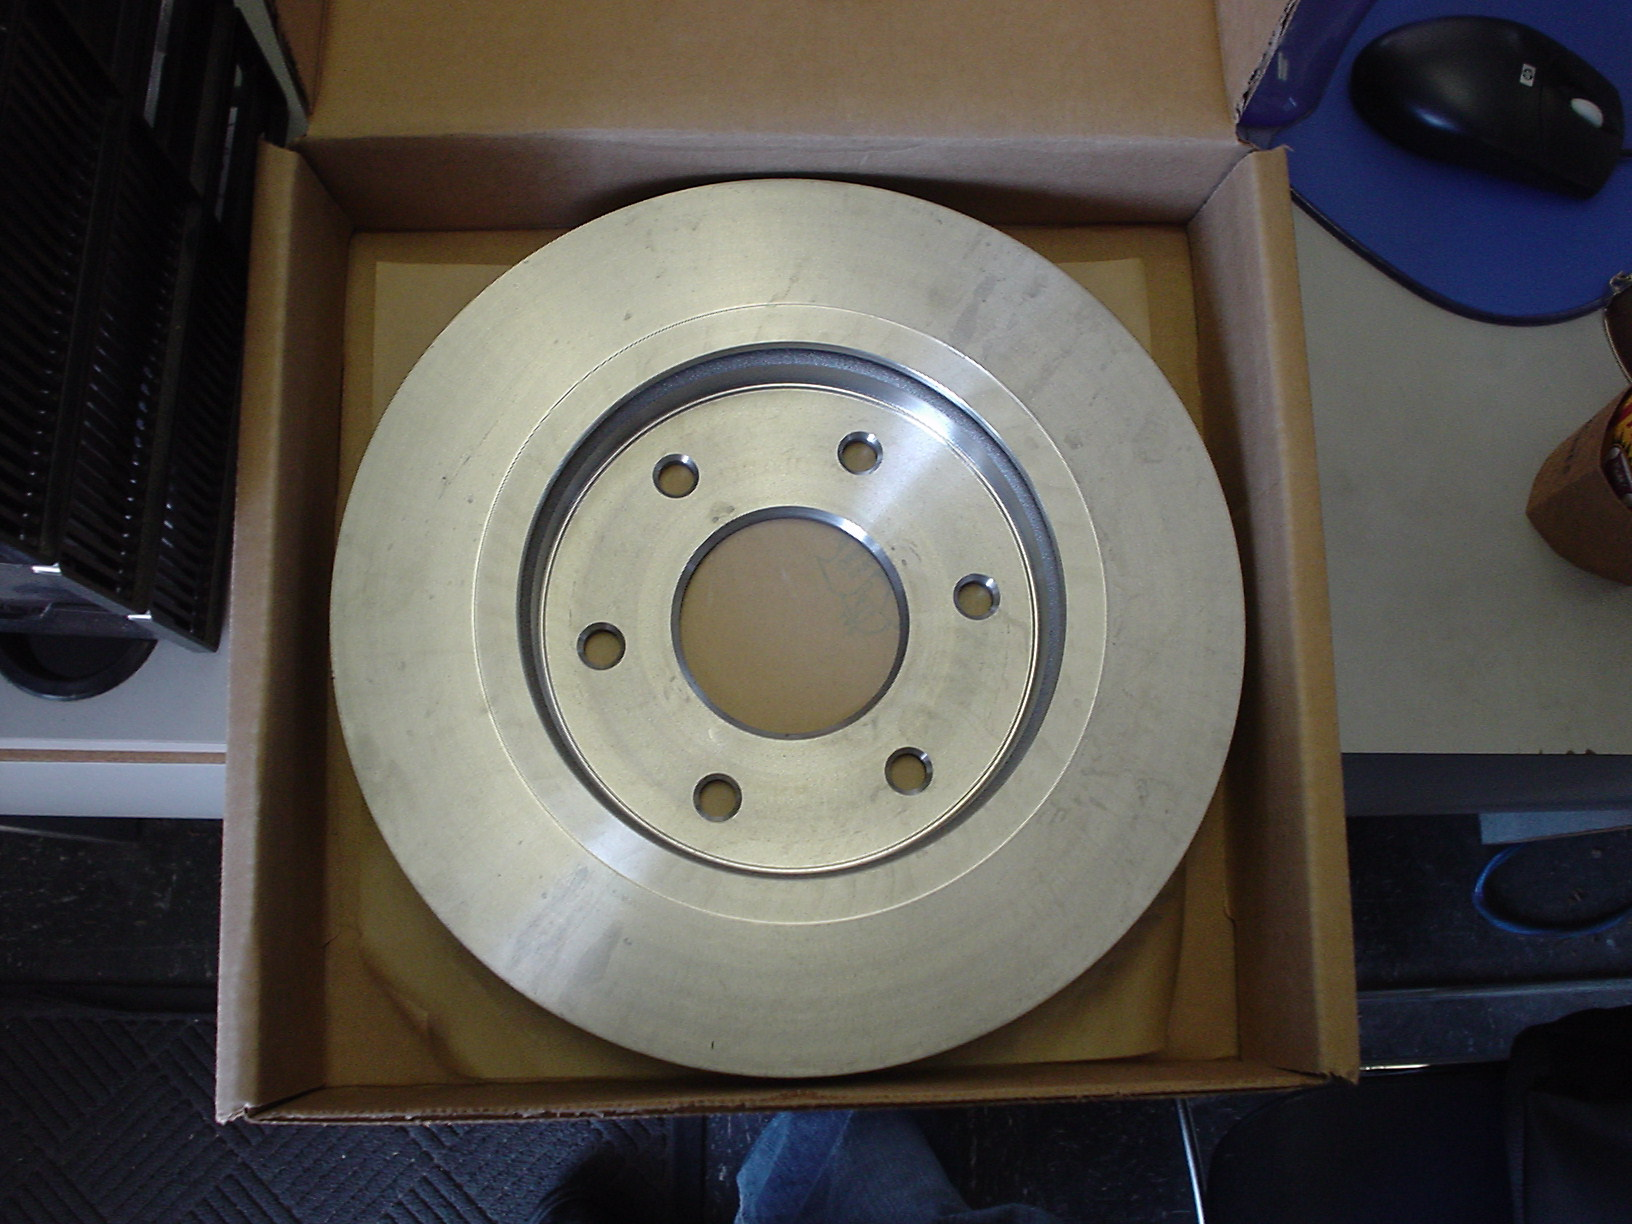 photos of new rotor from nissan pic 3 jpg